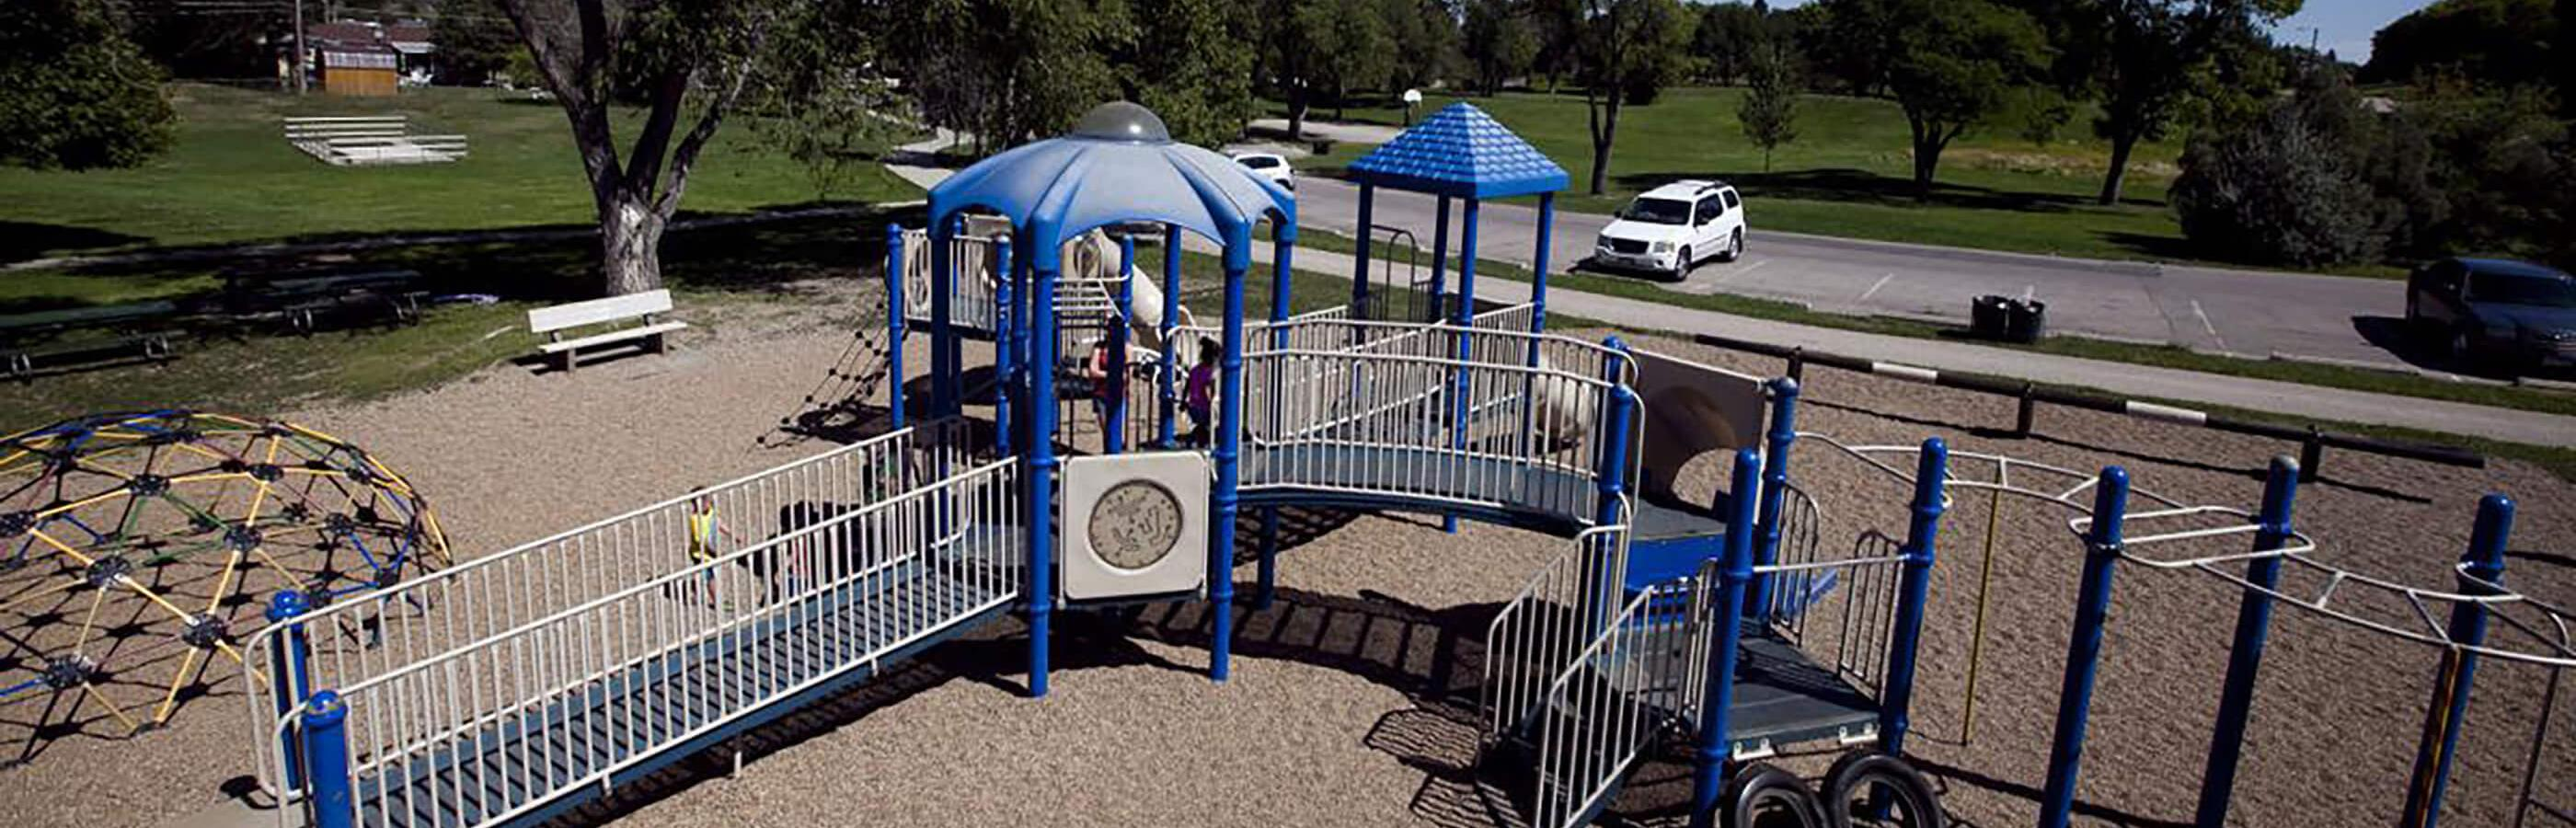 Playground Equipment At Robbinsdale Park